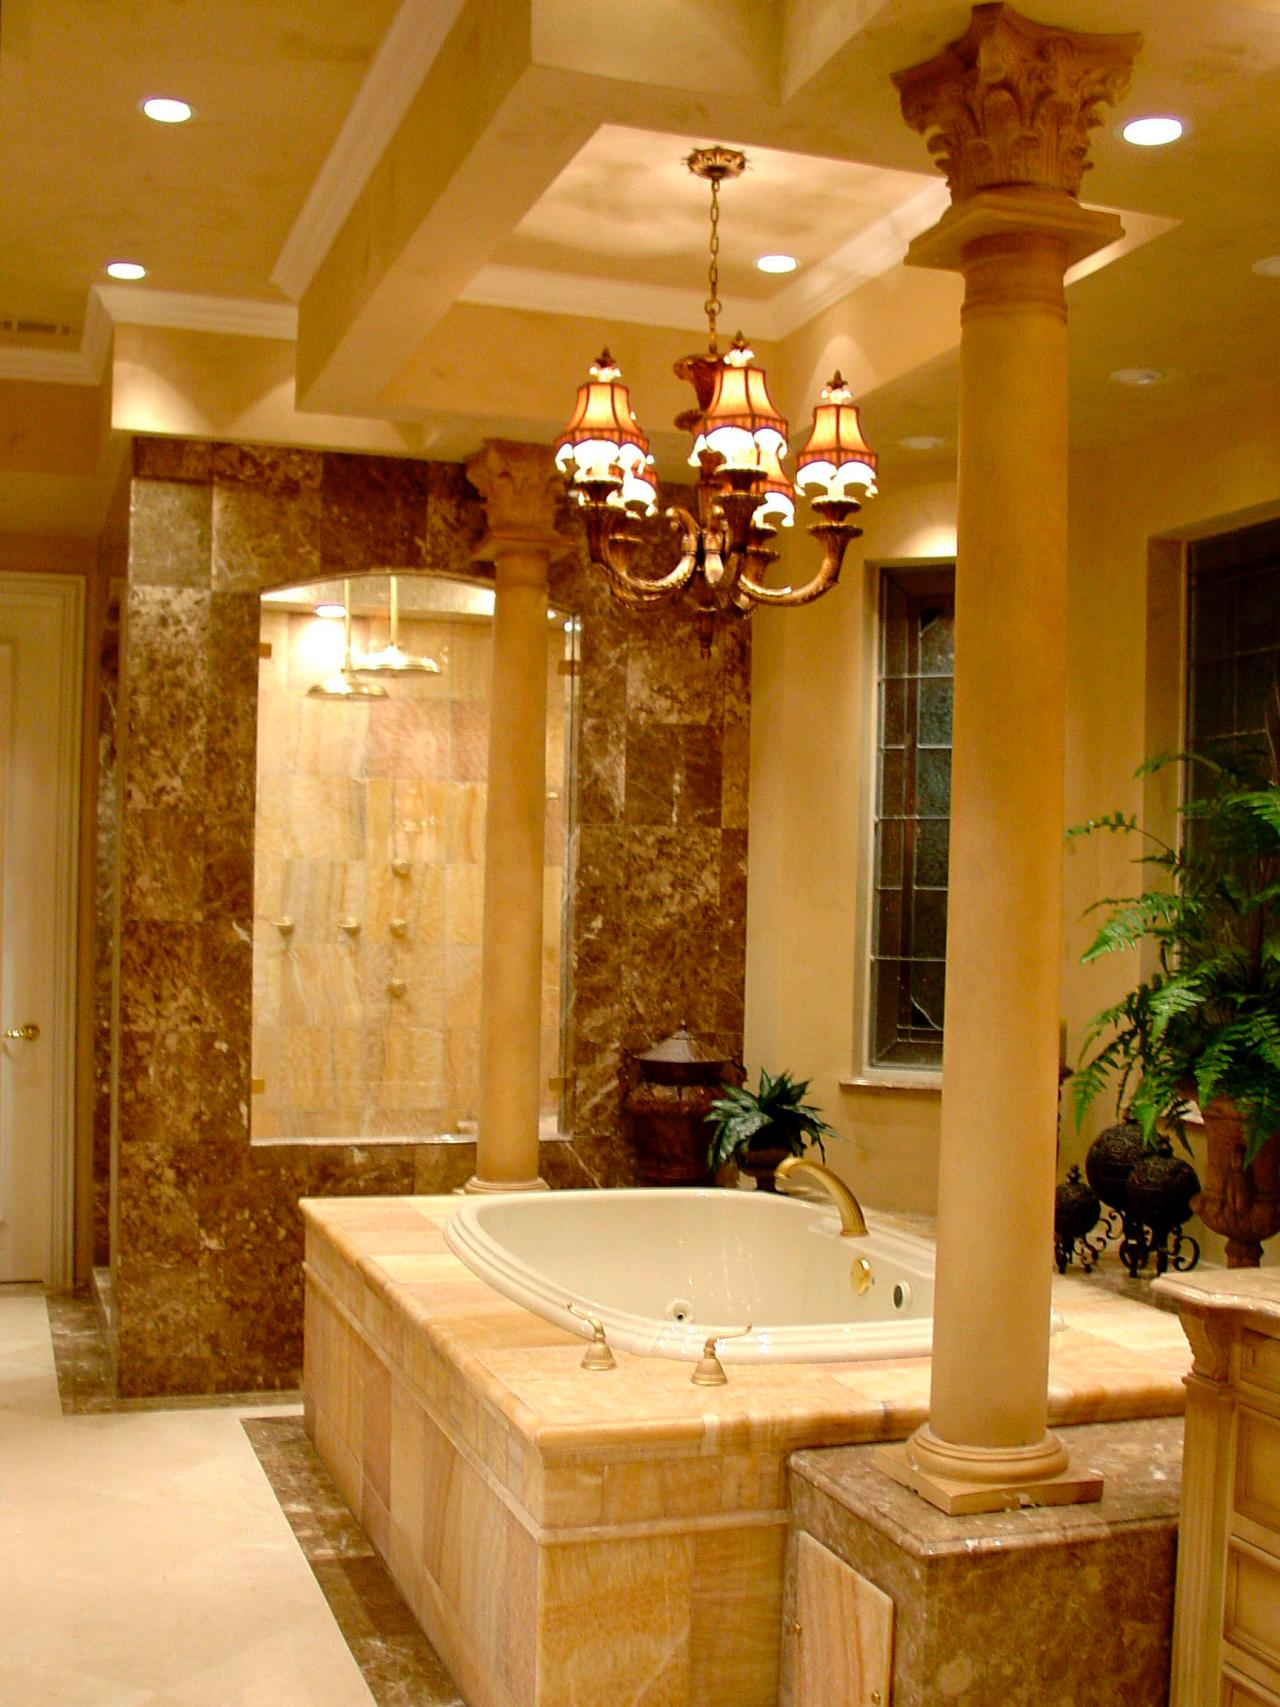 Bathroom Lighting Fixtures HGTV - Gold bathroom light fixtures for bathroom decor ideas